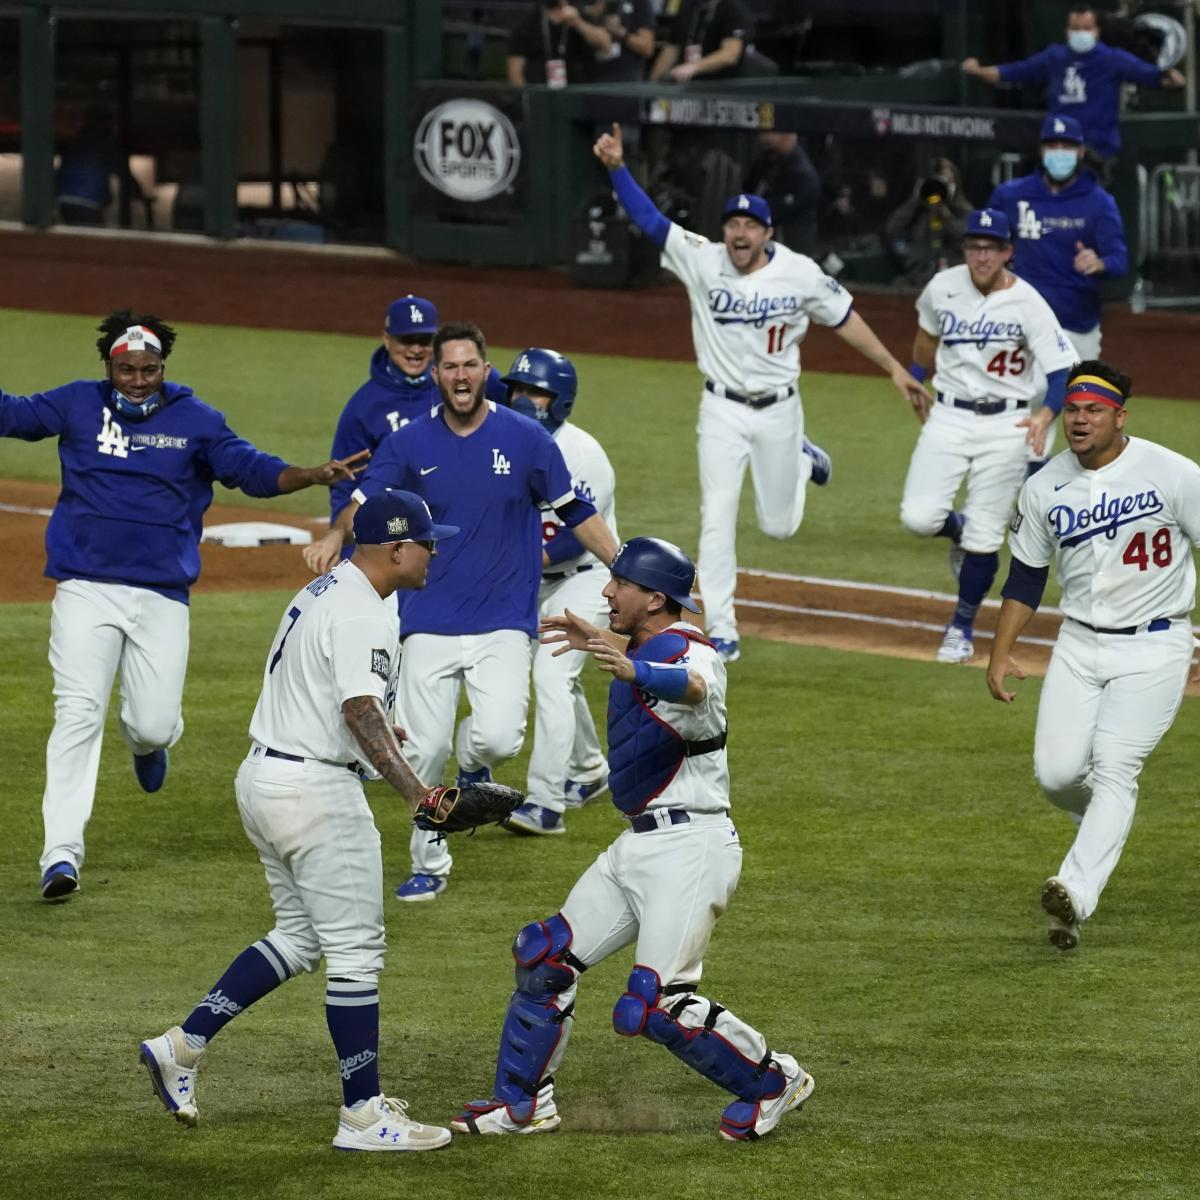 2021 world series betting odds binary options trading strategy review process